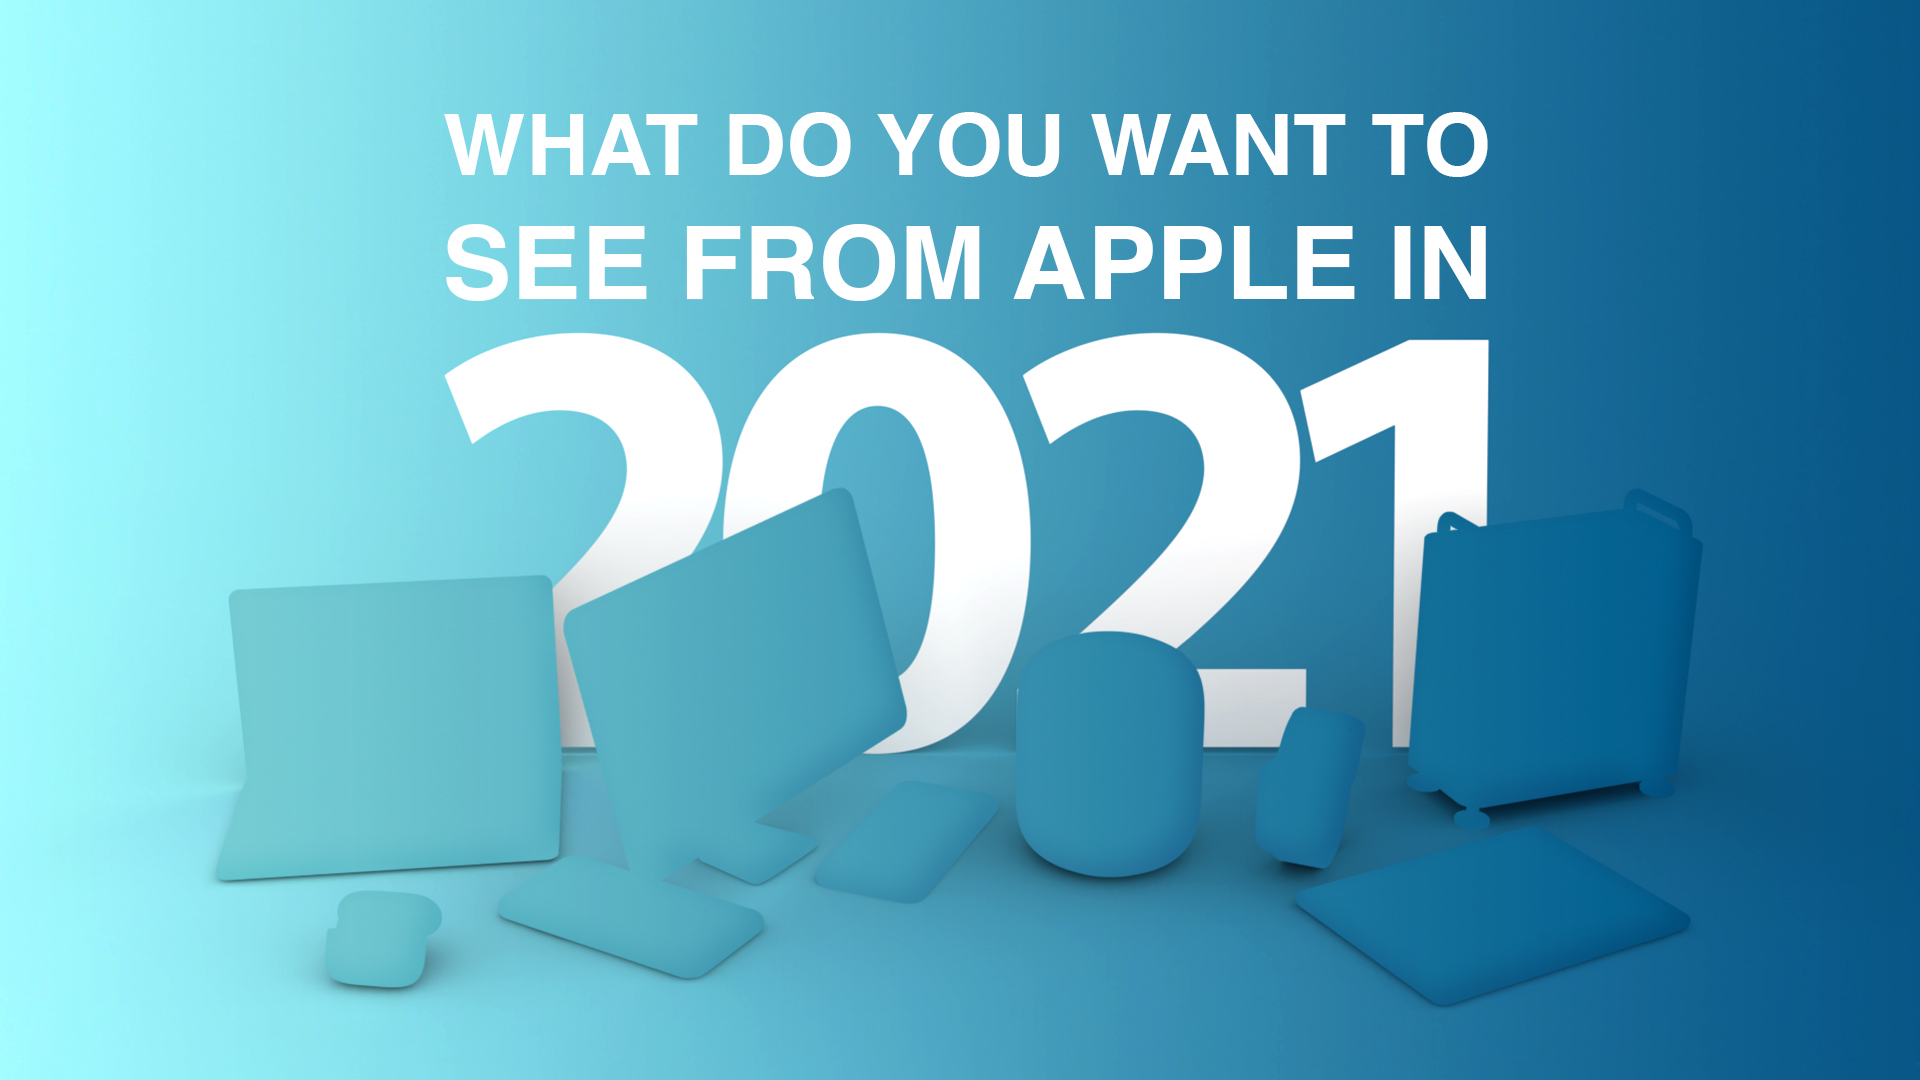 What Do You Want to See From Apple in 2021?